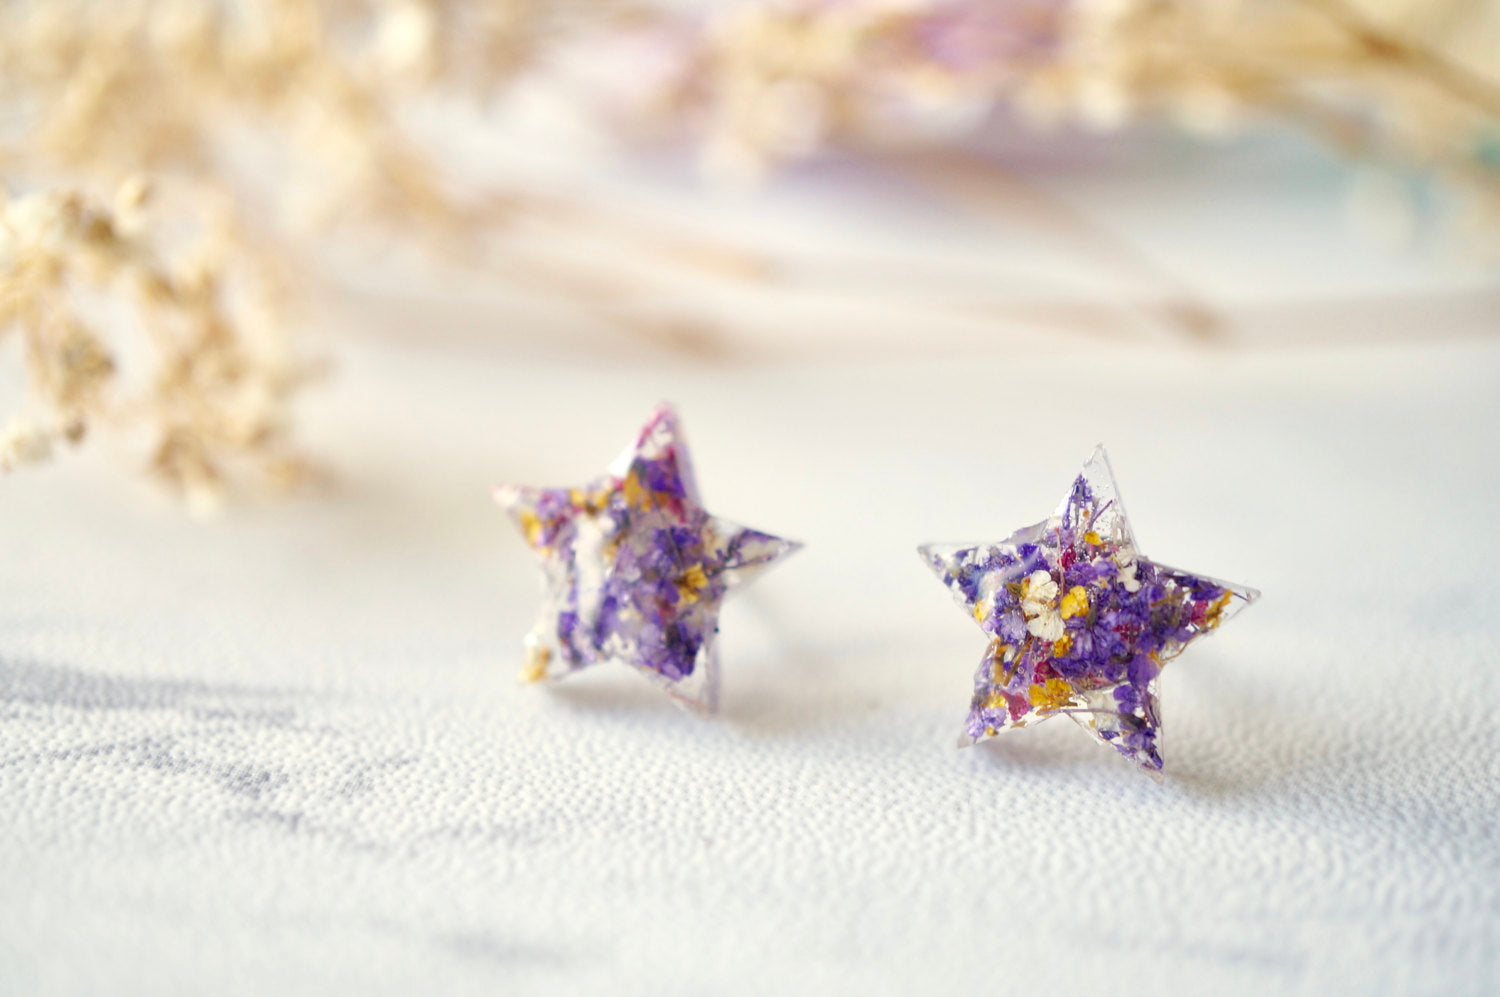 Real Dried Flowers and Resin Star Stud Earrings in Purple Pink Yellow